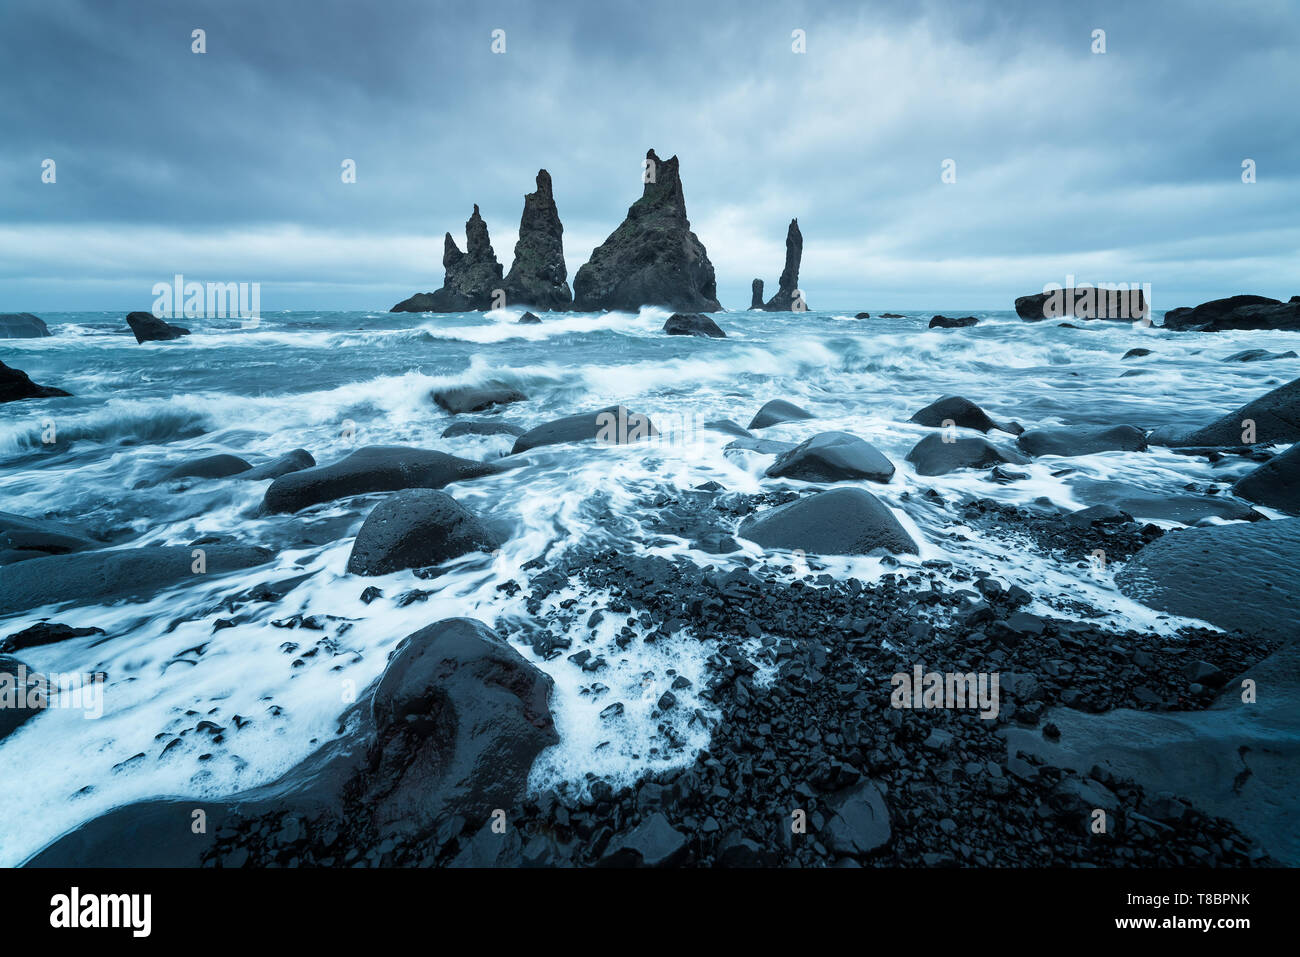 Trolls fingers. Reynisdrangar cliffs near the Vik town. Sullen landscape with the Atlantic Ocean. Tourist attraction of Iceland - Stock Image